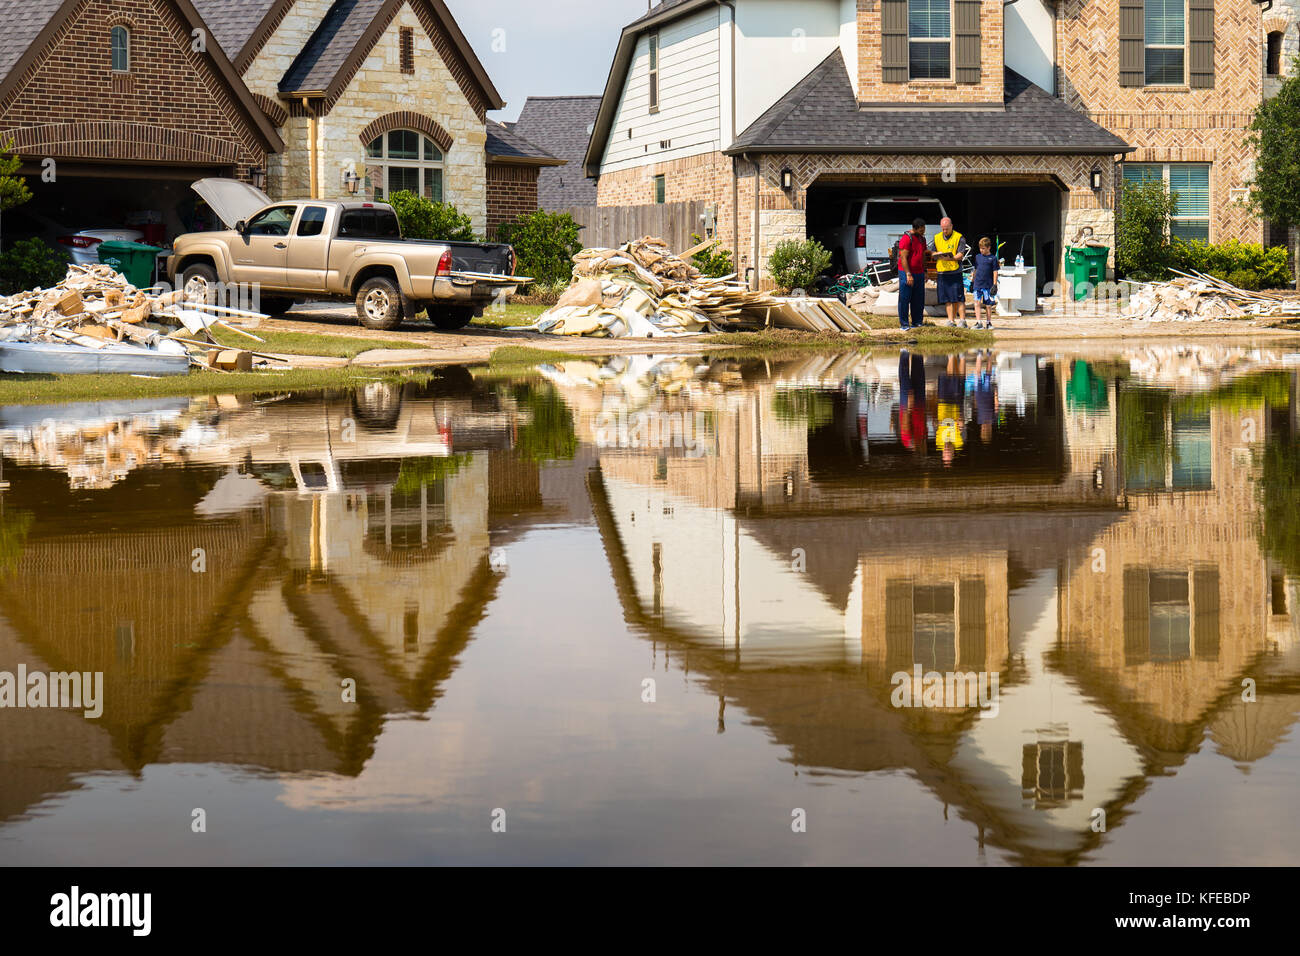 Houses in Houston suburb flooded from Hurricane Harvey 2017 Disaster relief efforts underway - Stock Image